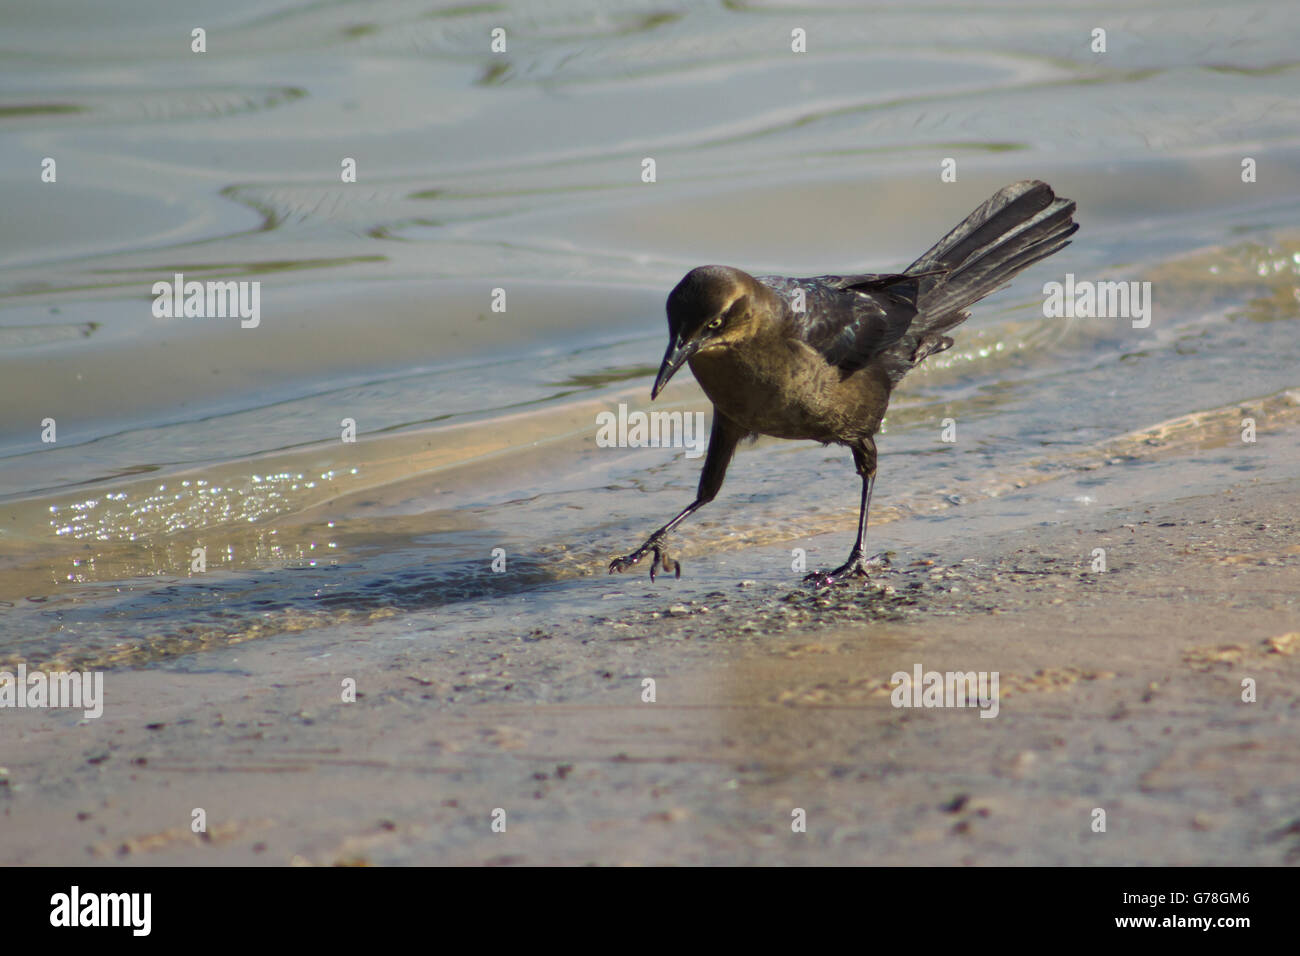 Black bird, a grackle, walking along the shore of a retention pond - Stock Image